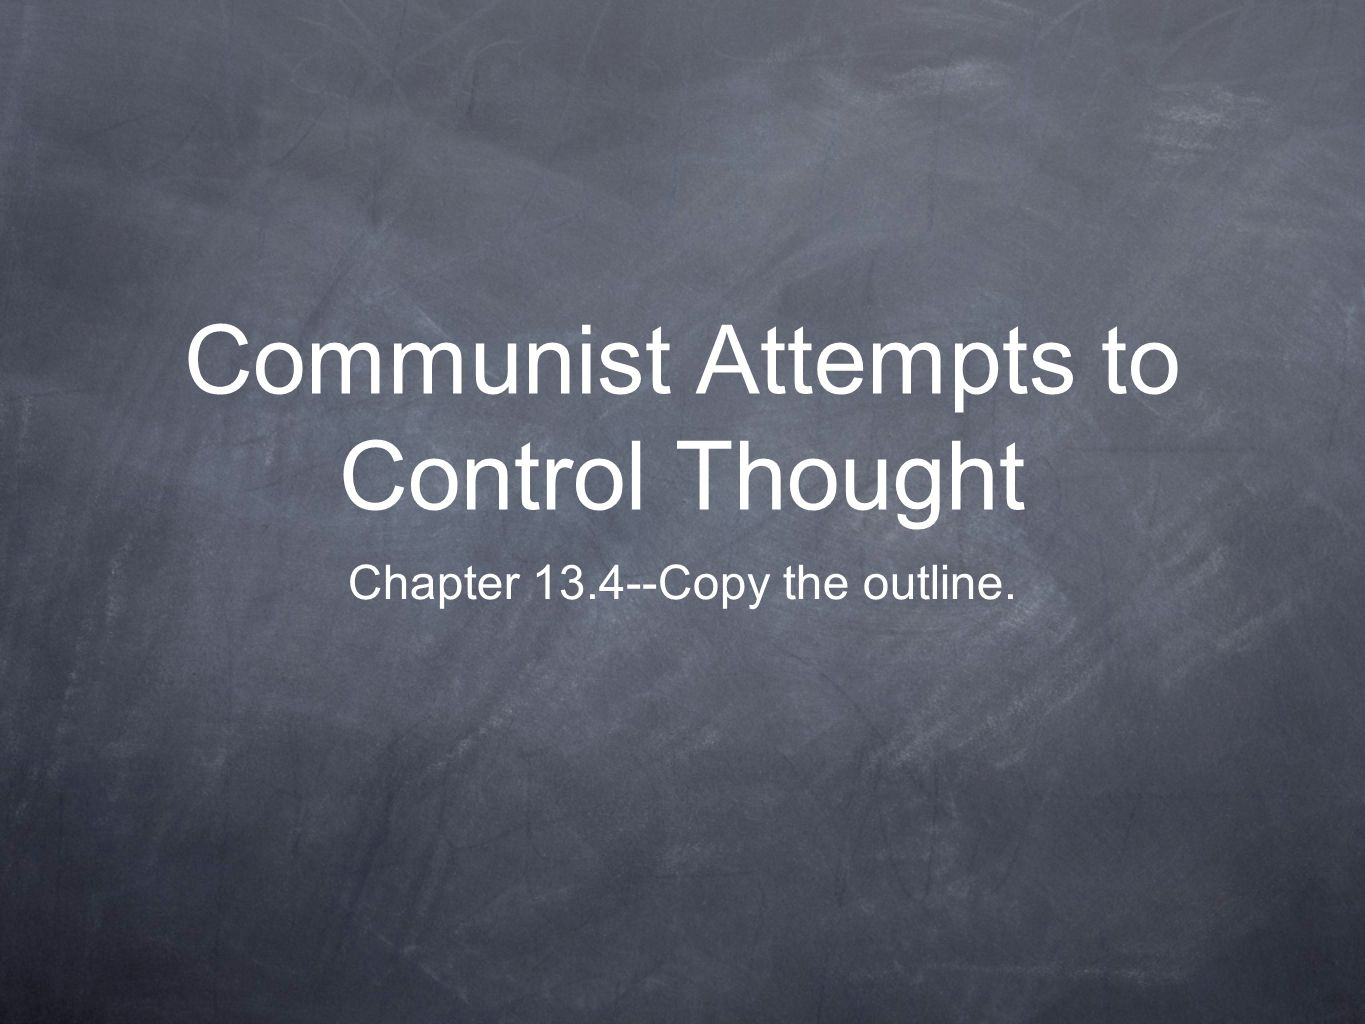 Communist Attempts to Control Thought Chapter 13.4--Copy the outline.